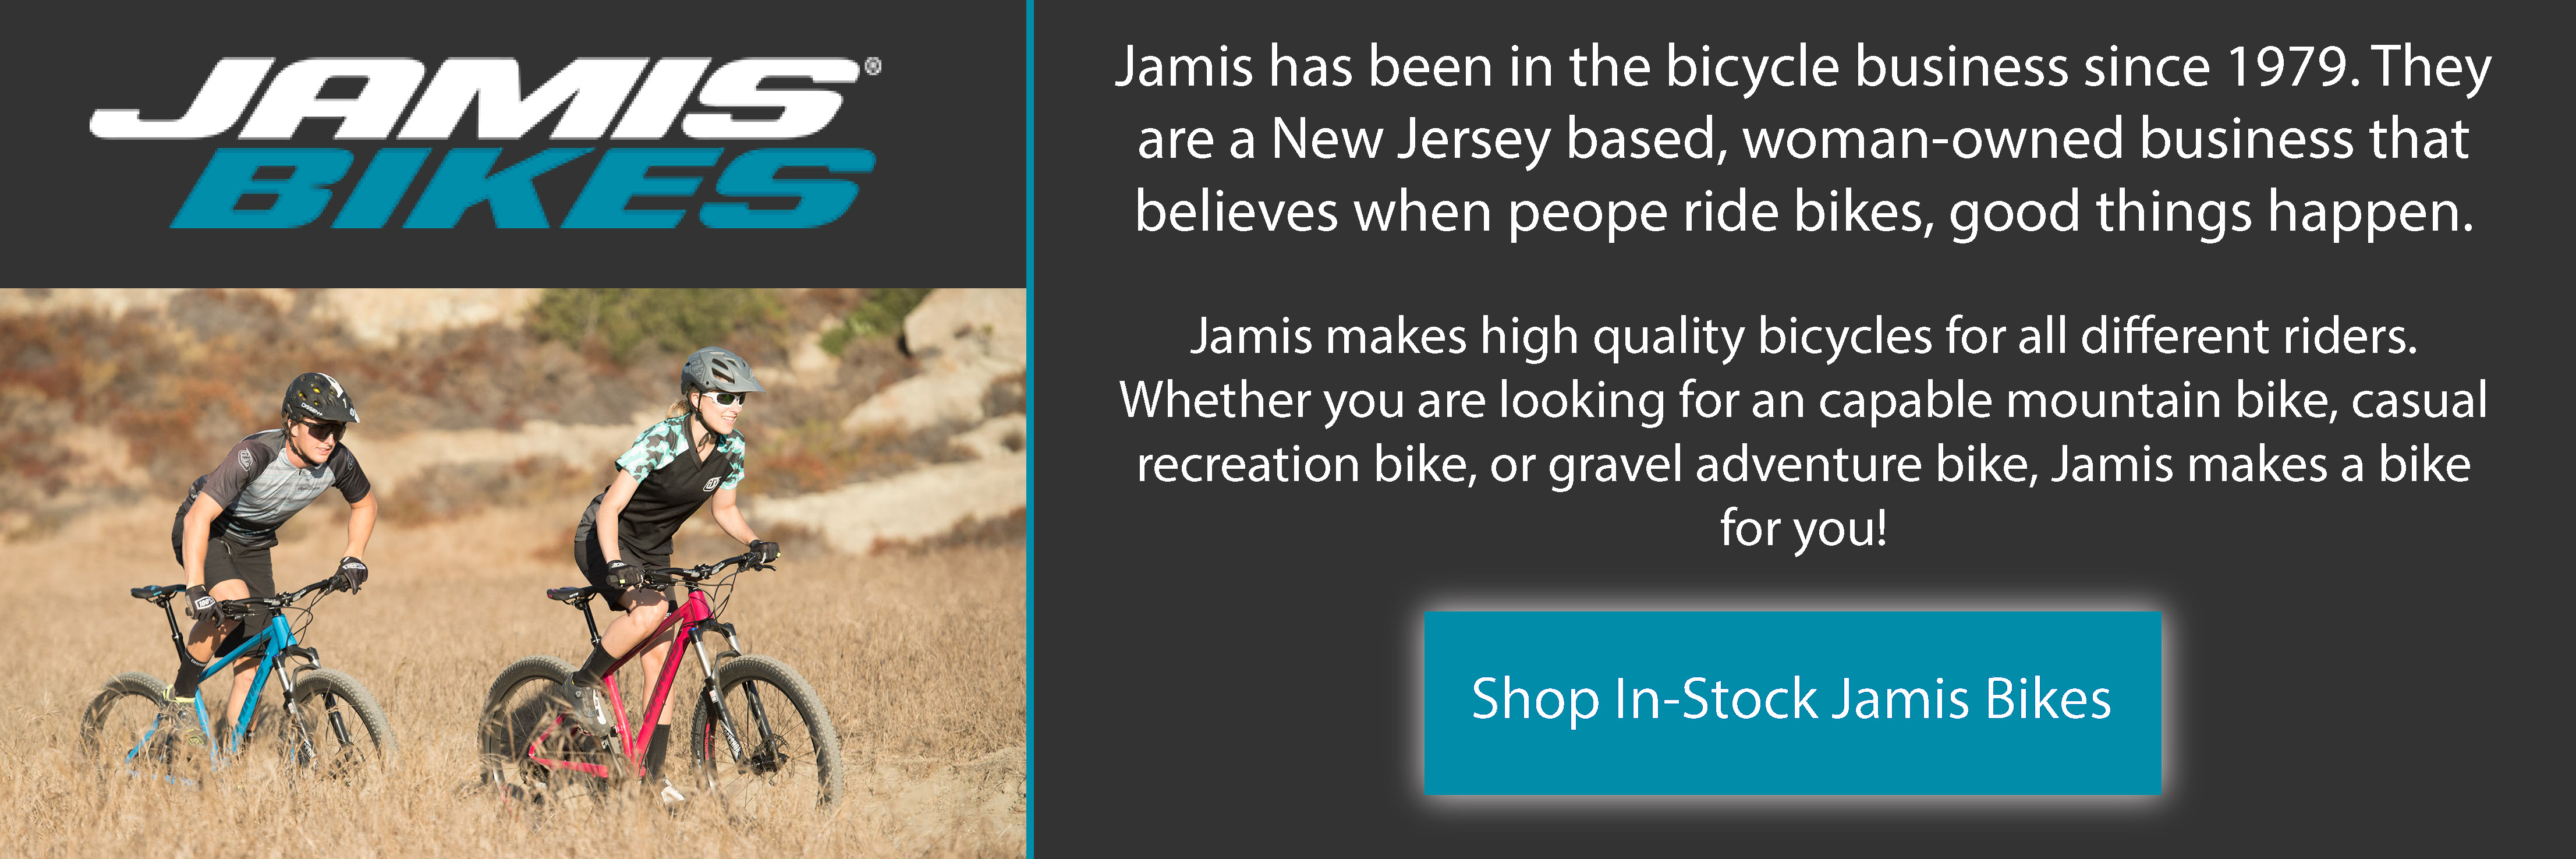 Shop In-Stock Jamis Bikes